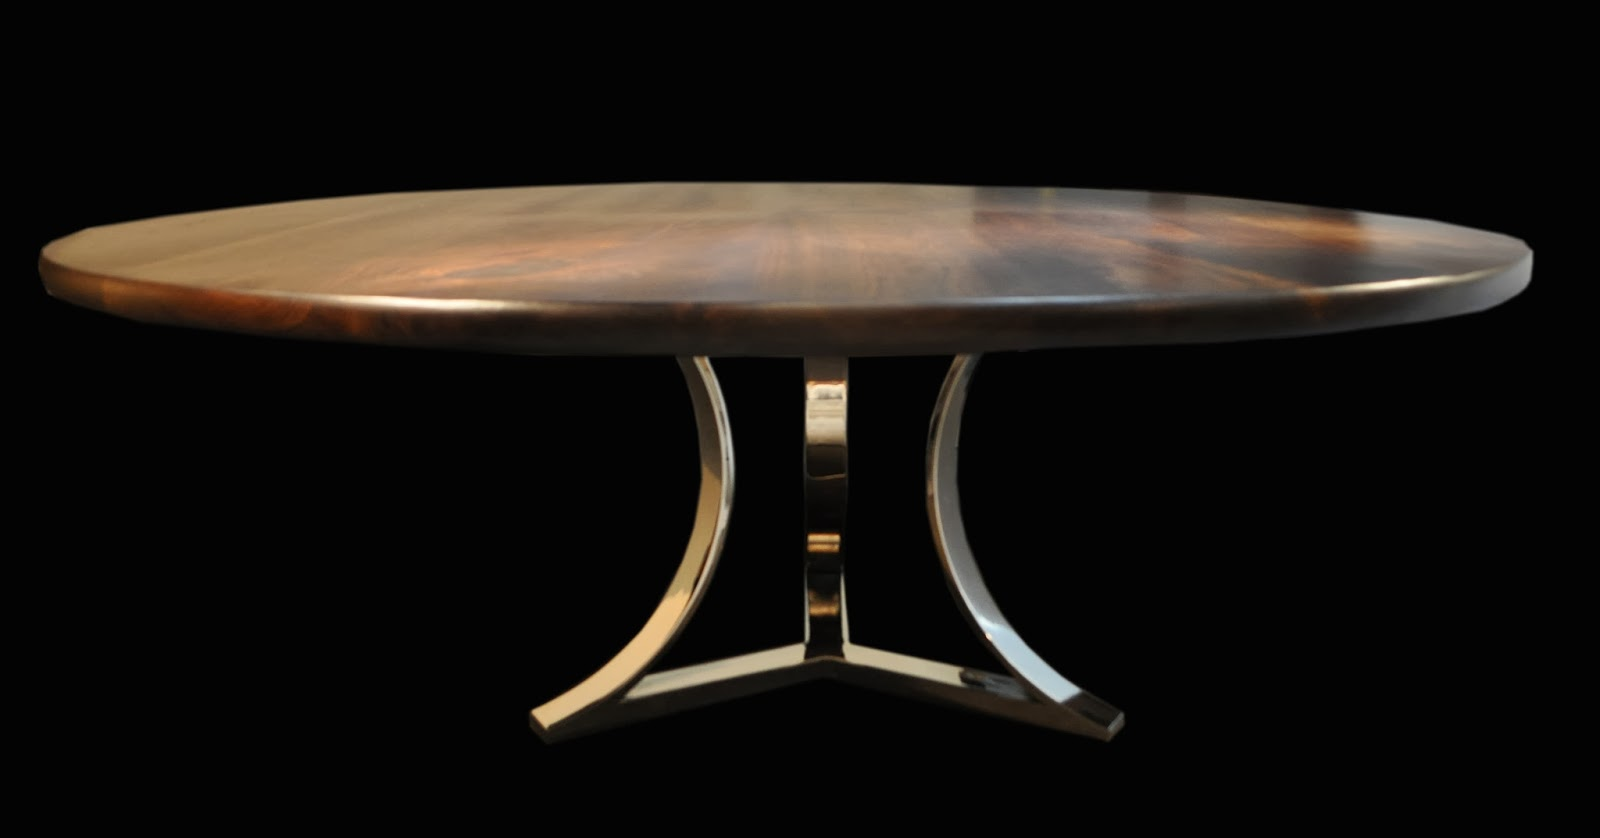 Lovely Tri Arc Chrome Base with Traditional Walnut in Table Top